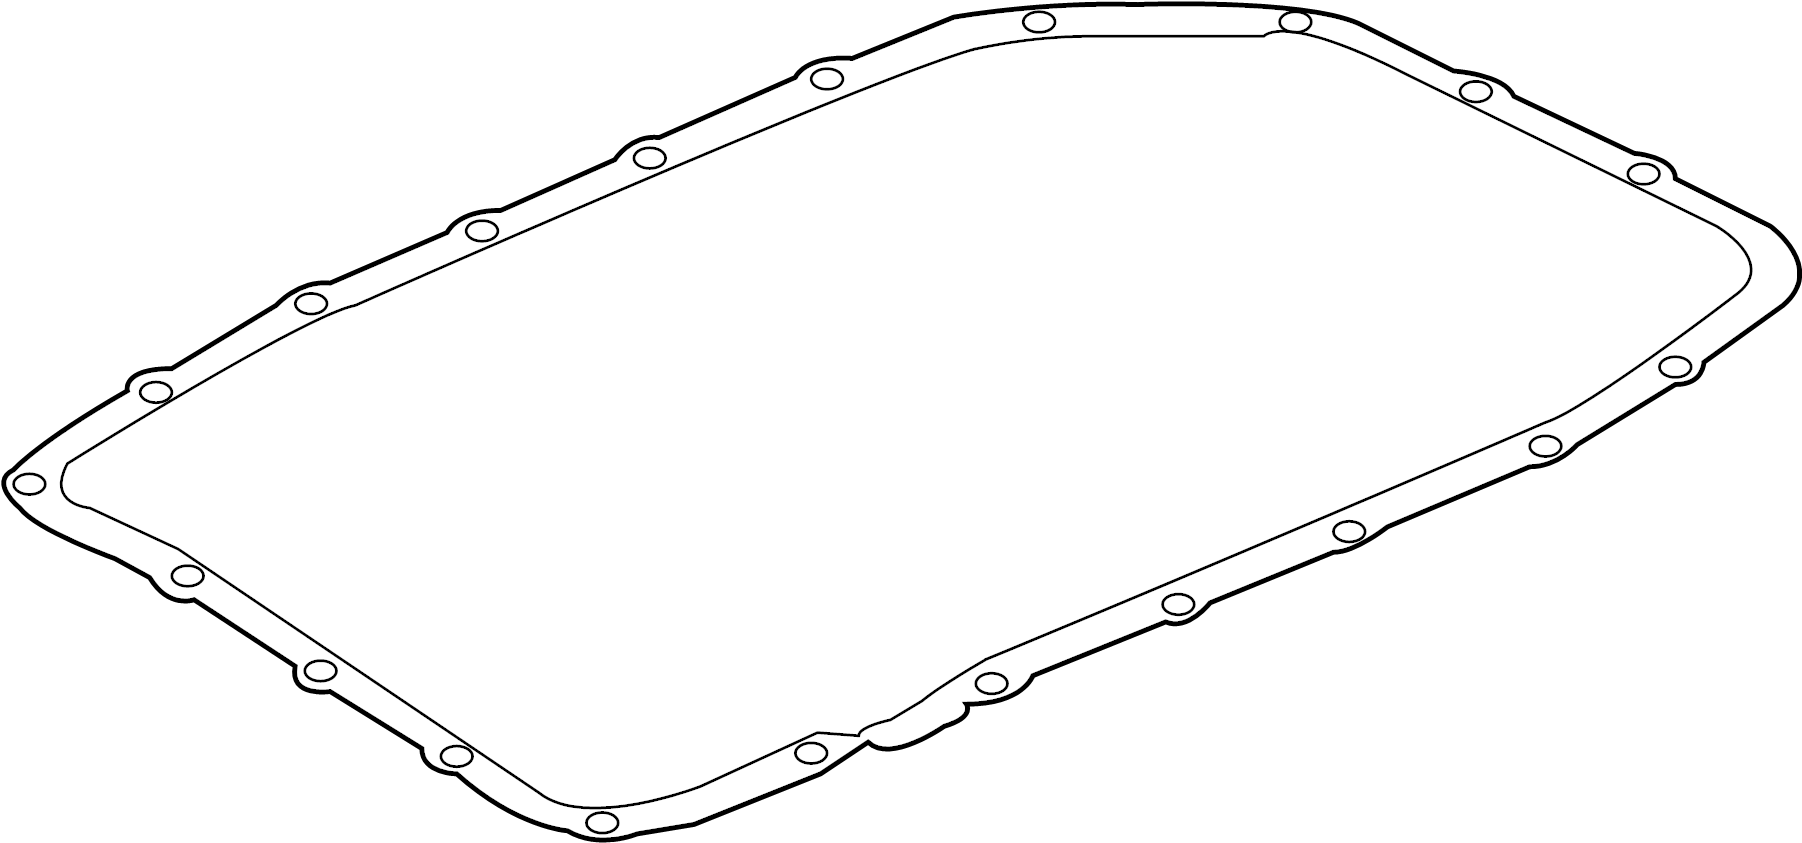 Land Rover Range Rover Automatic Transmission Oil Pan